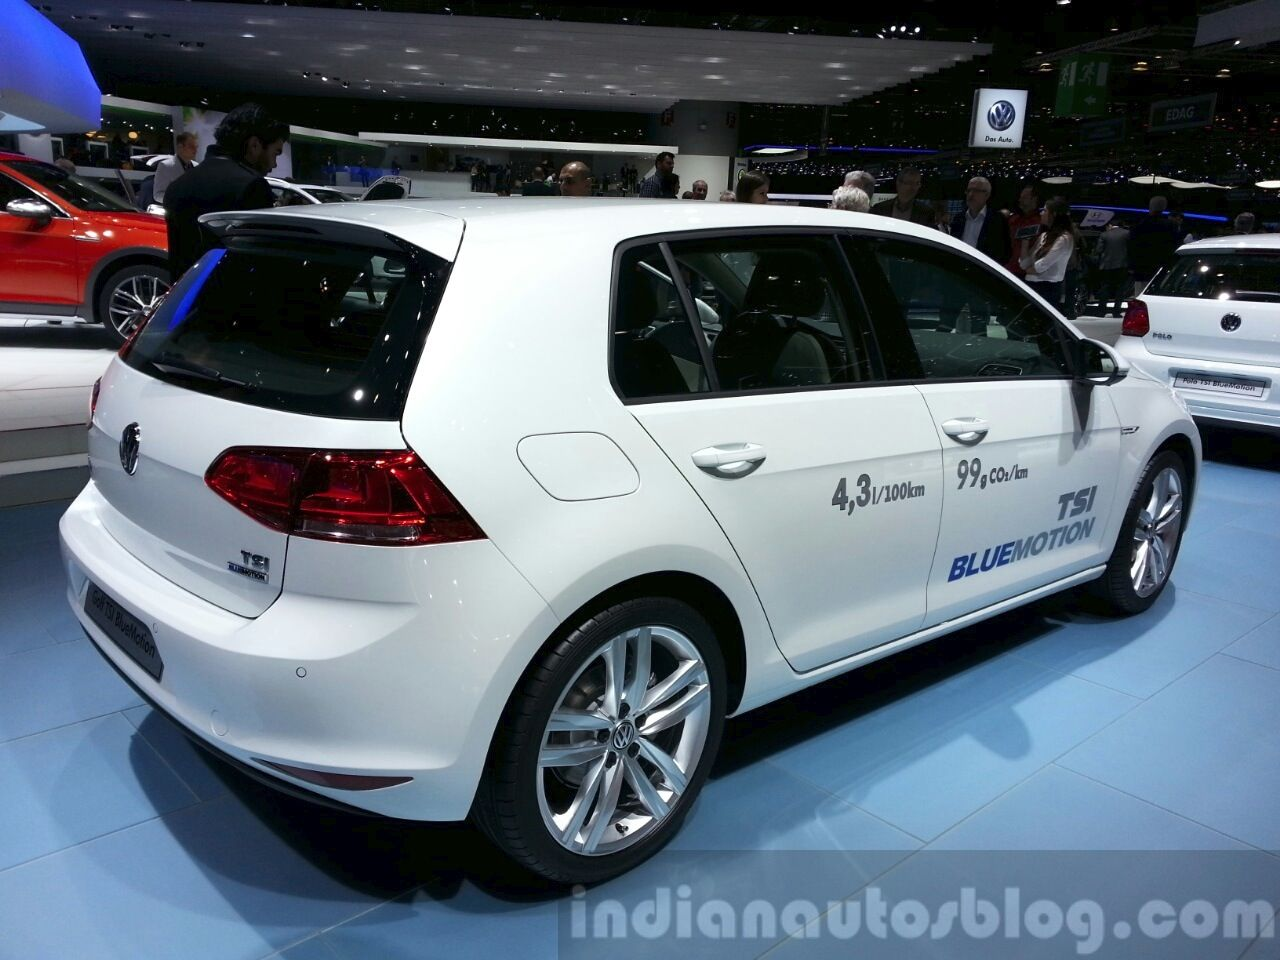 Volkswagen Confirms Major Update For The Vw Golf In Nov